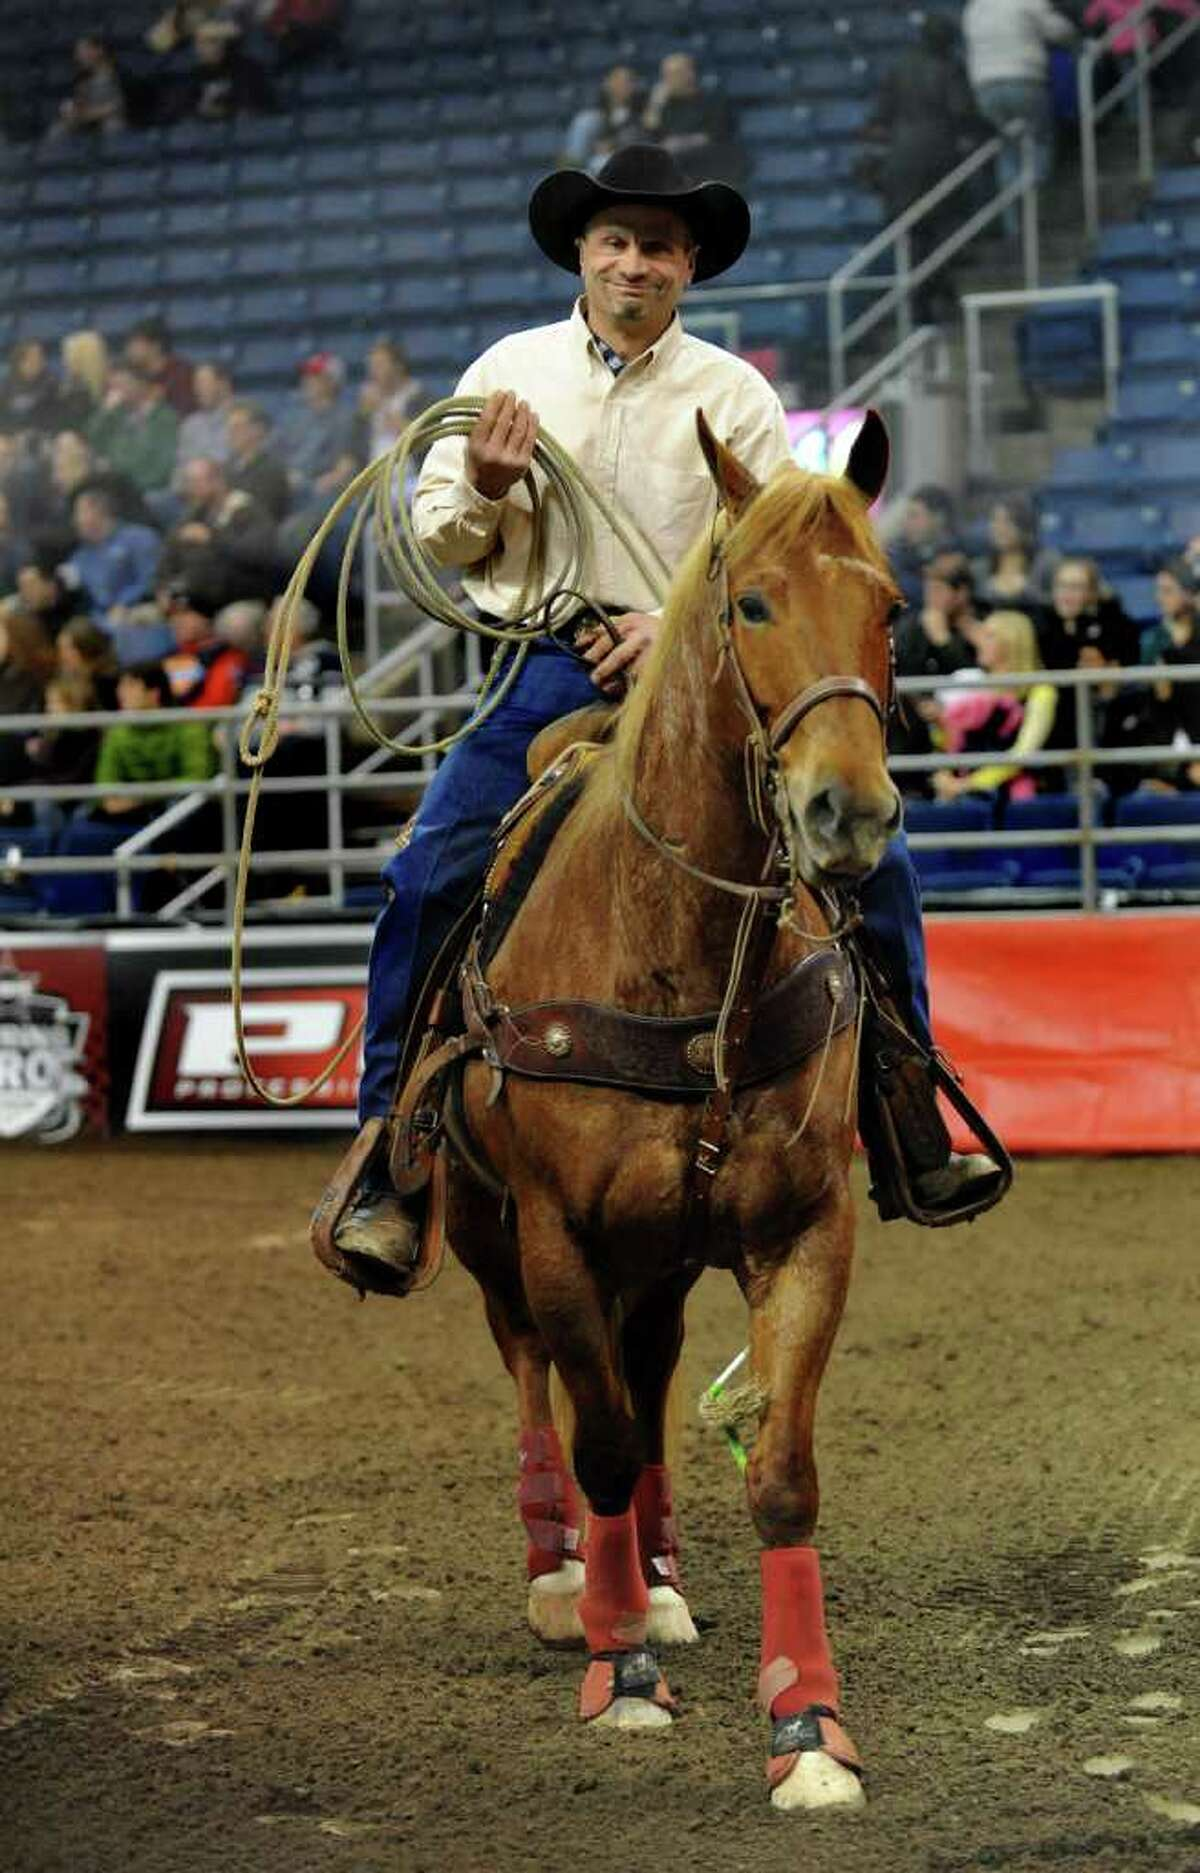 Runout man Pete Fontano, of Morris, Conn. and his horse Macho, during the Professional Bull Riders Touring Pro Division's Town Fair Tire Invitational at Webster Bank Arena at Harbor Yard in Bridgeport, Conn. on Friday January 21, 2011. The runout man's job is to keep the bulls in the yard and to corral them if necessary with his lasso. Fontano says that Macho is used to the bulls sometimes bumping into him.